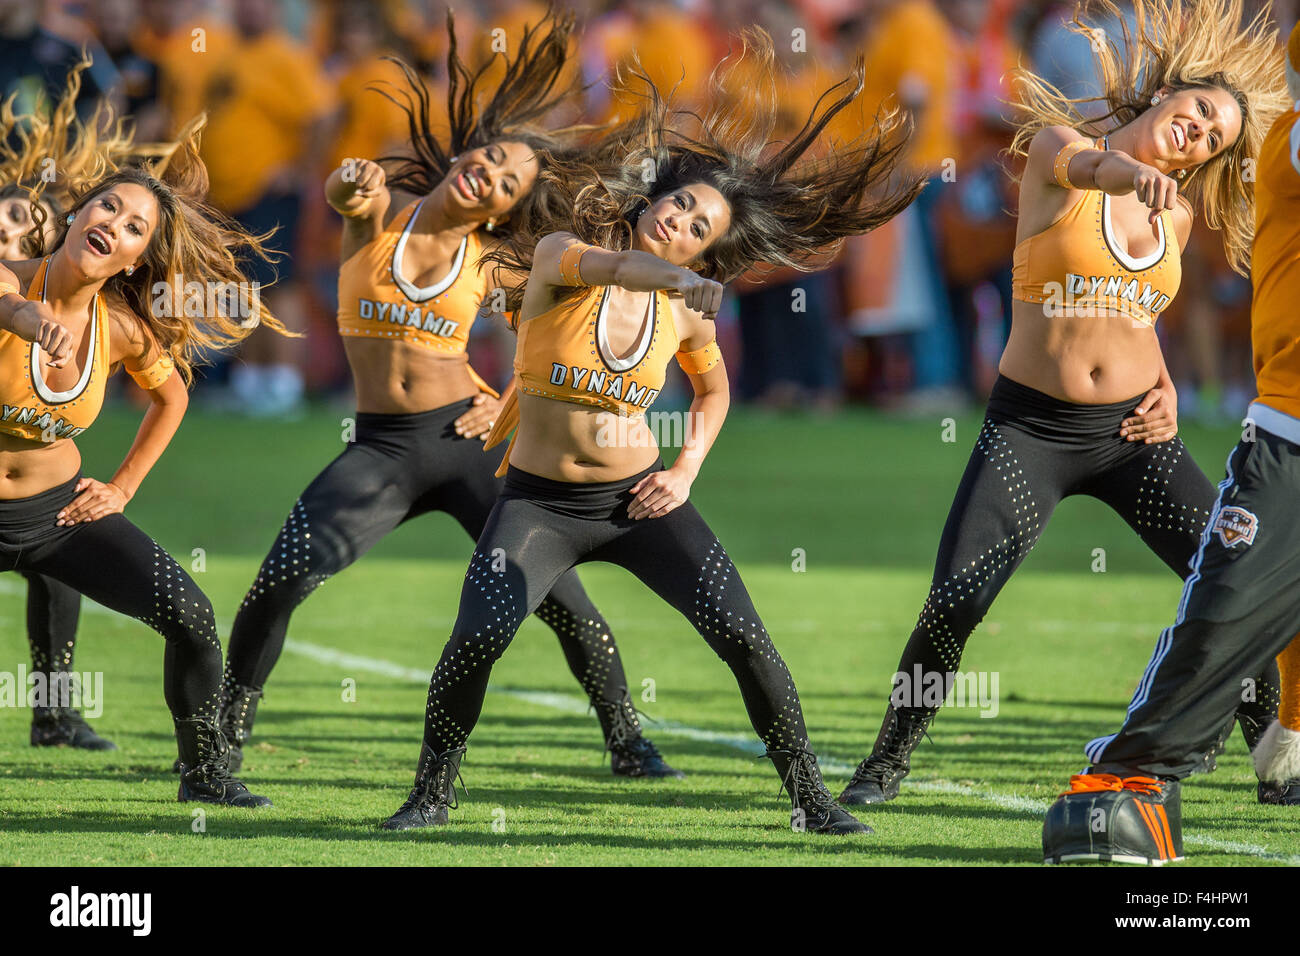 Houston, Texas, USA. 18th Oct, 2015. The Dynamo Girls dance team performs during halftime of an MLS game between - Stock Image